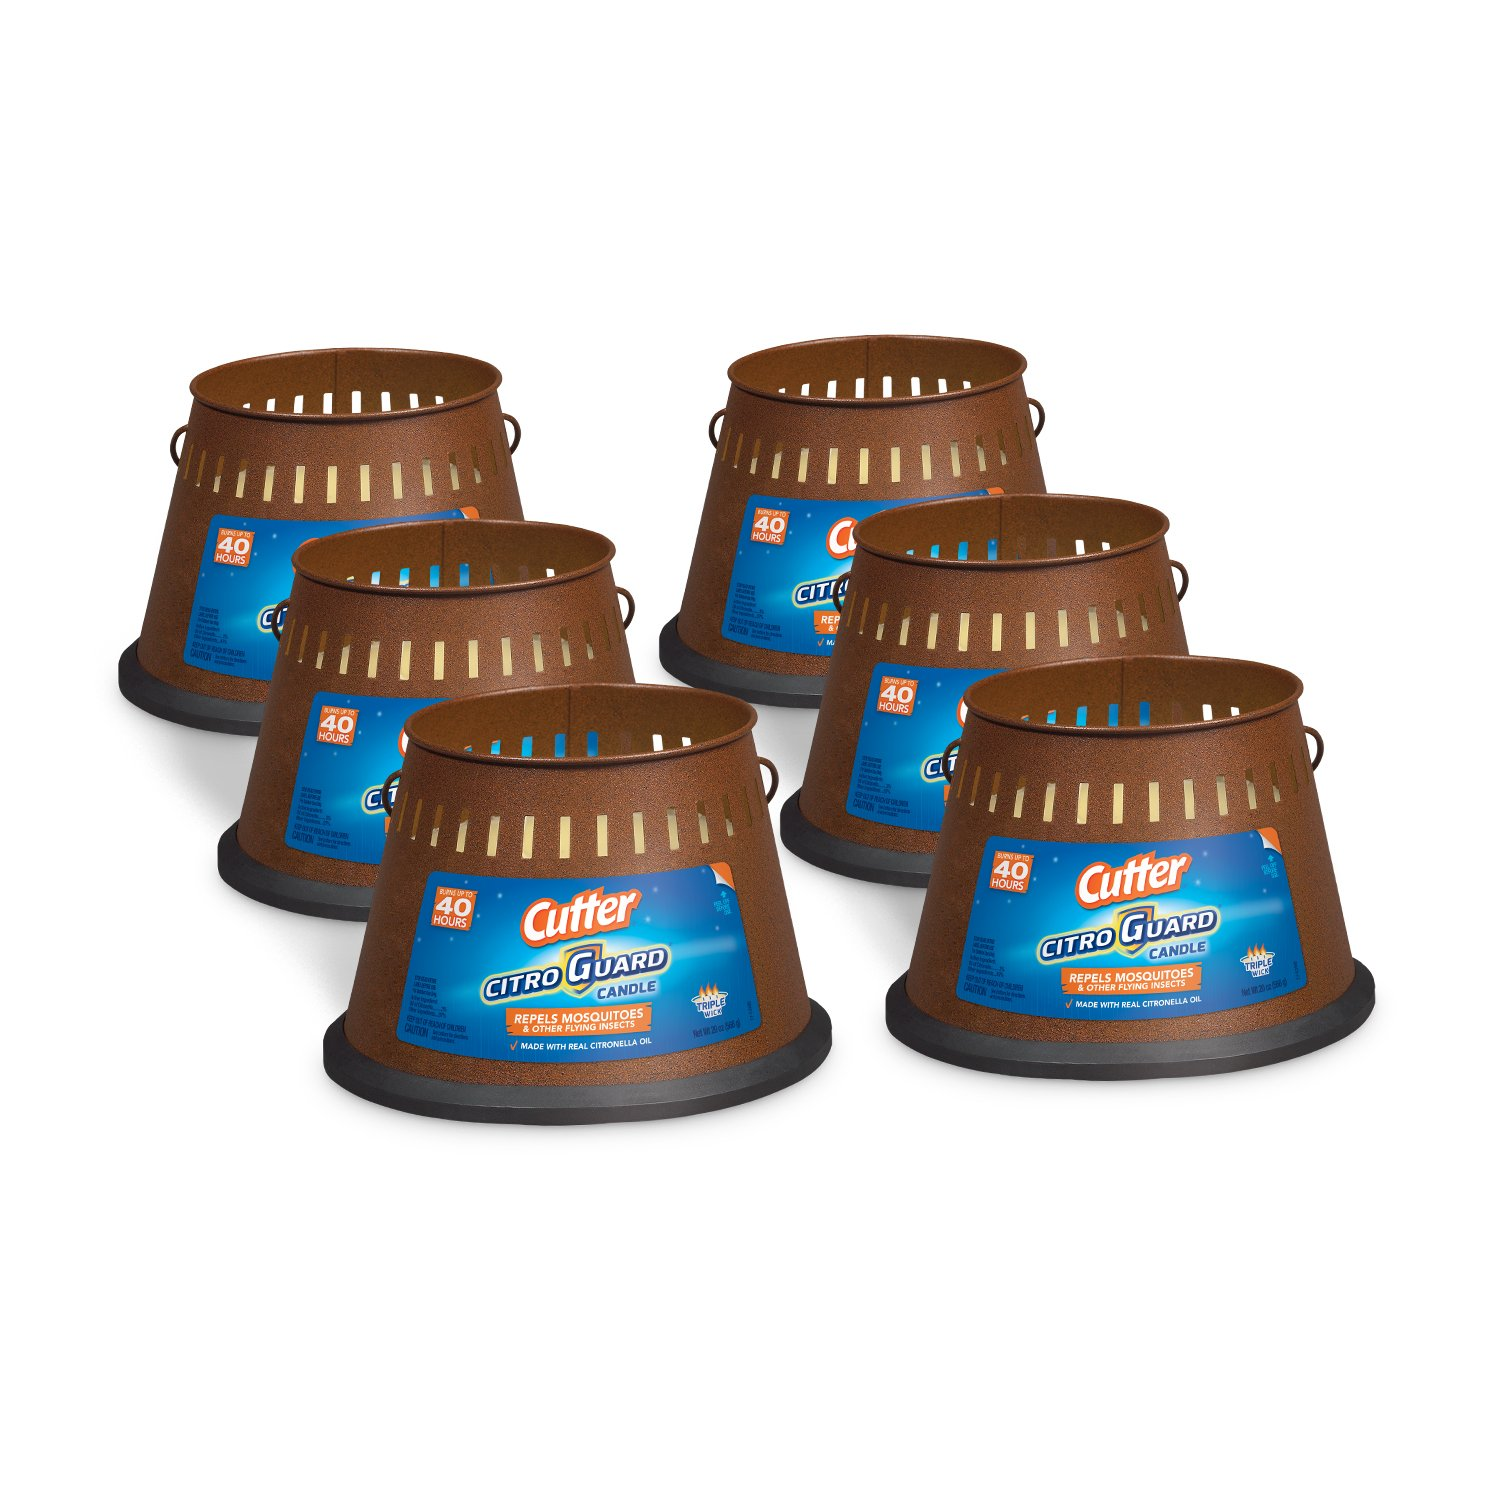 Cutter Citro Guard Candle, Triple Wick, 20-Ounce, 6-Pack by Cutter